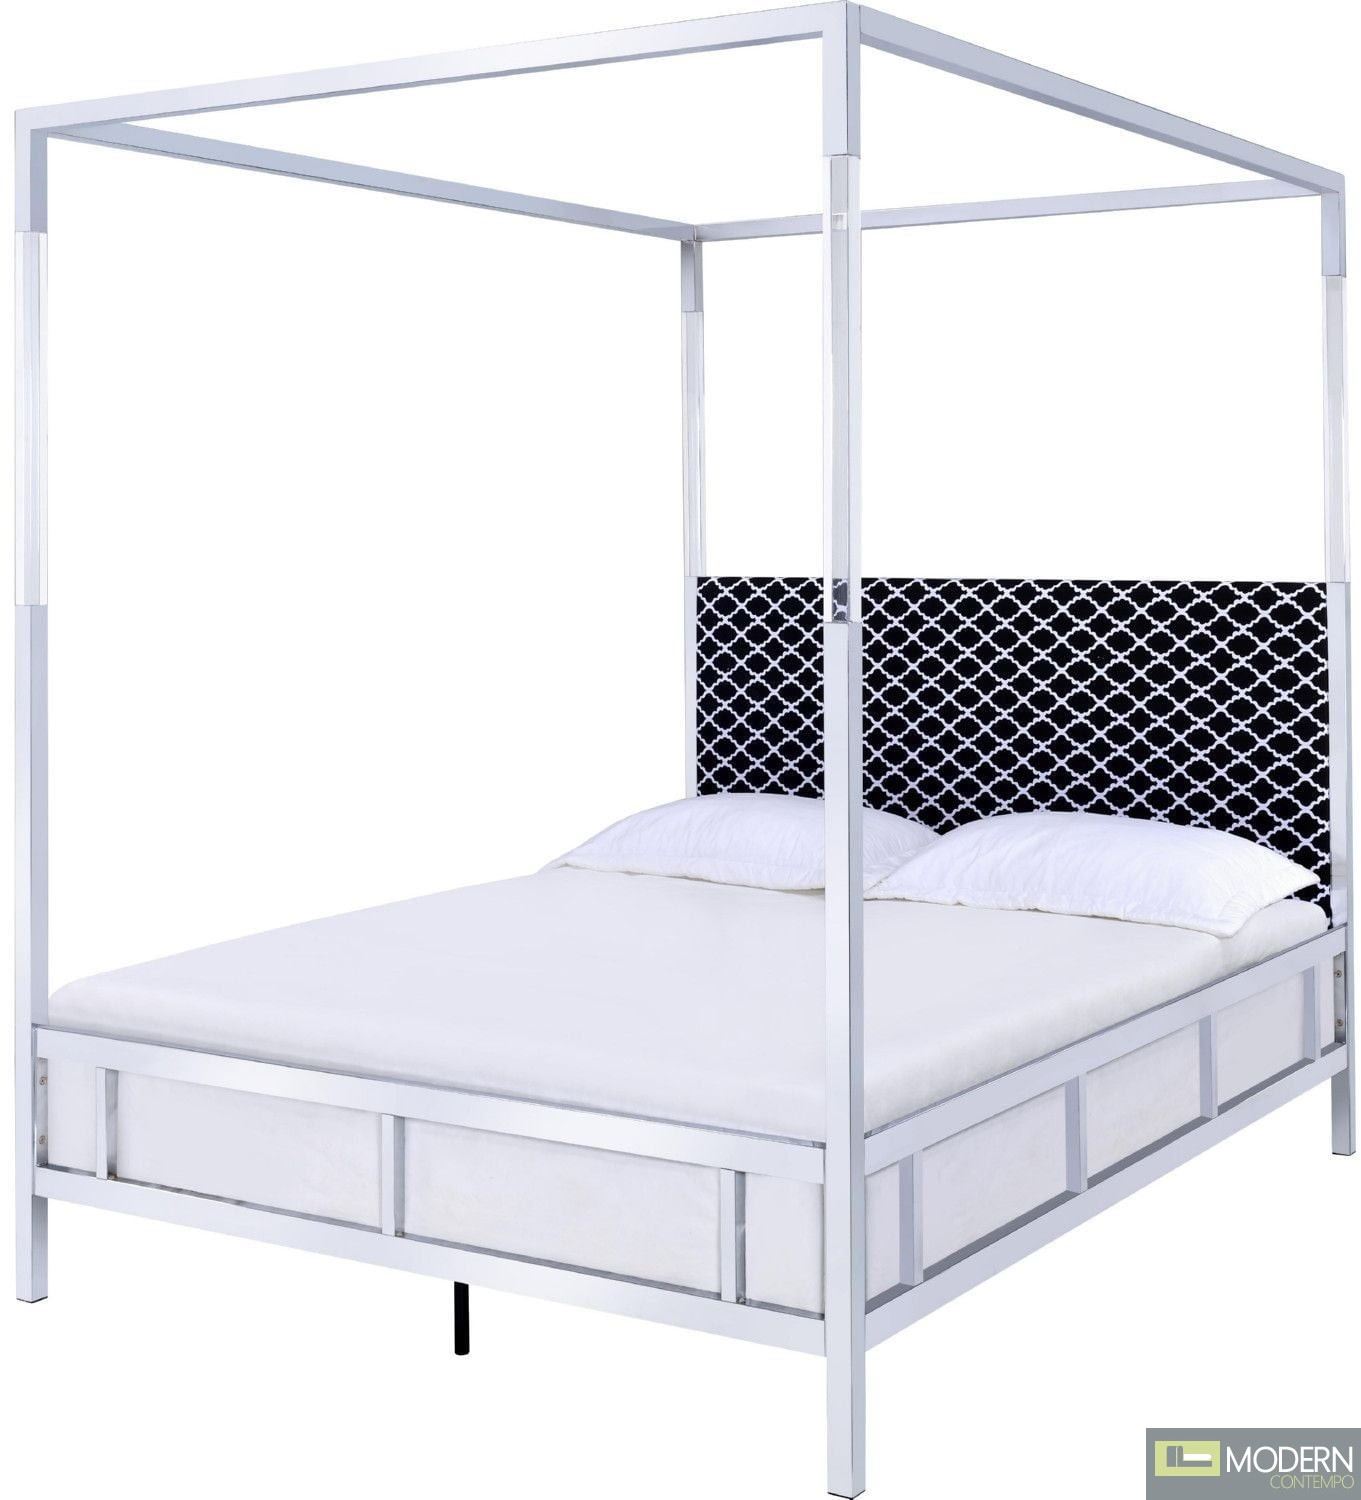 Contemporary Bedroom Set London Black By Acme Furniture: Regalia White Chrome Queen Upholstered Canopy Metal